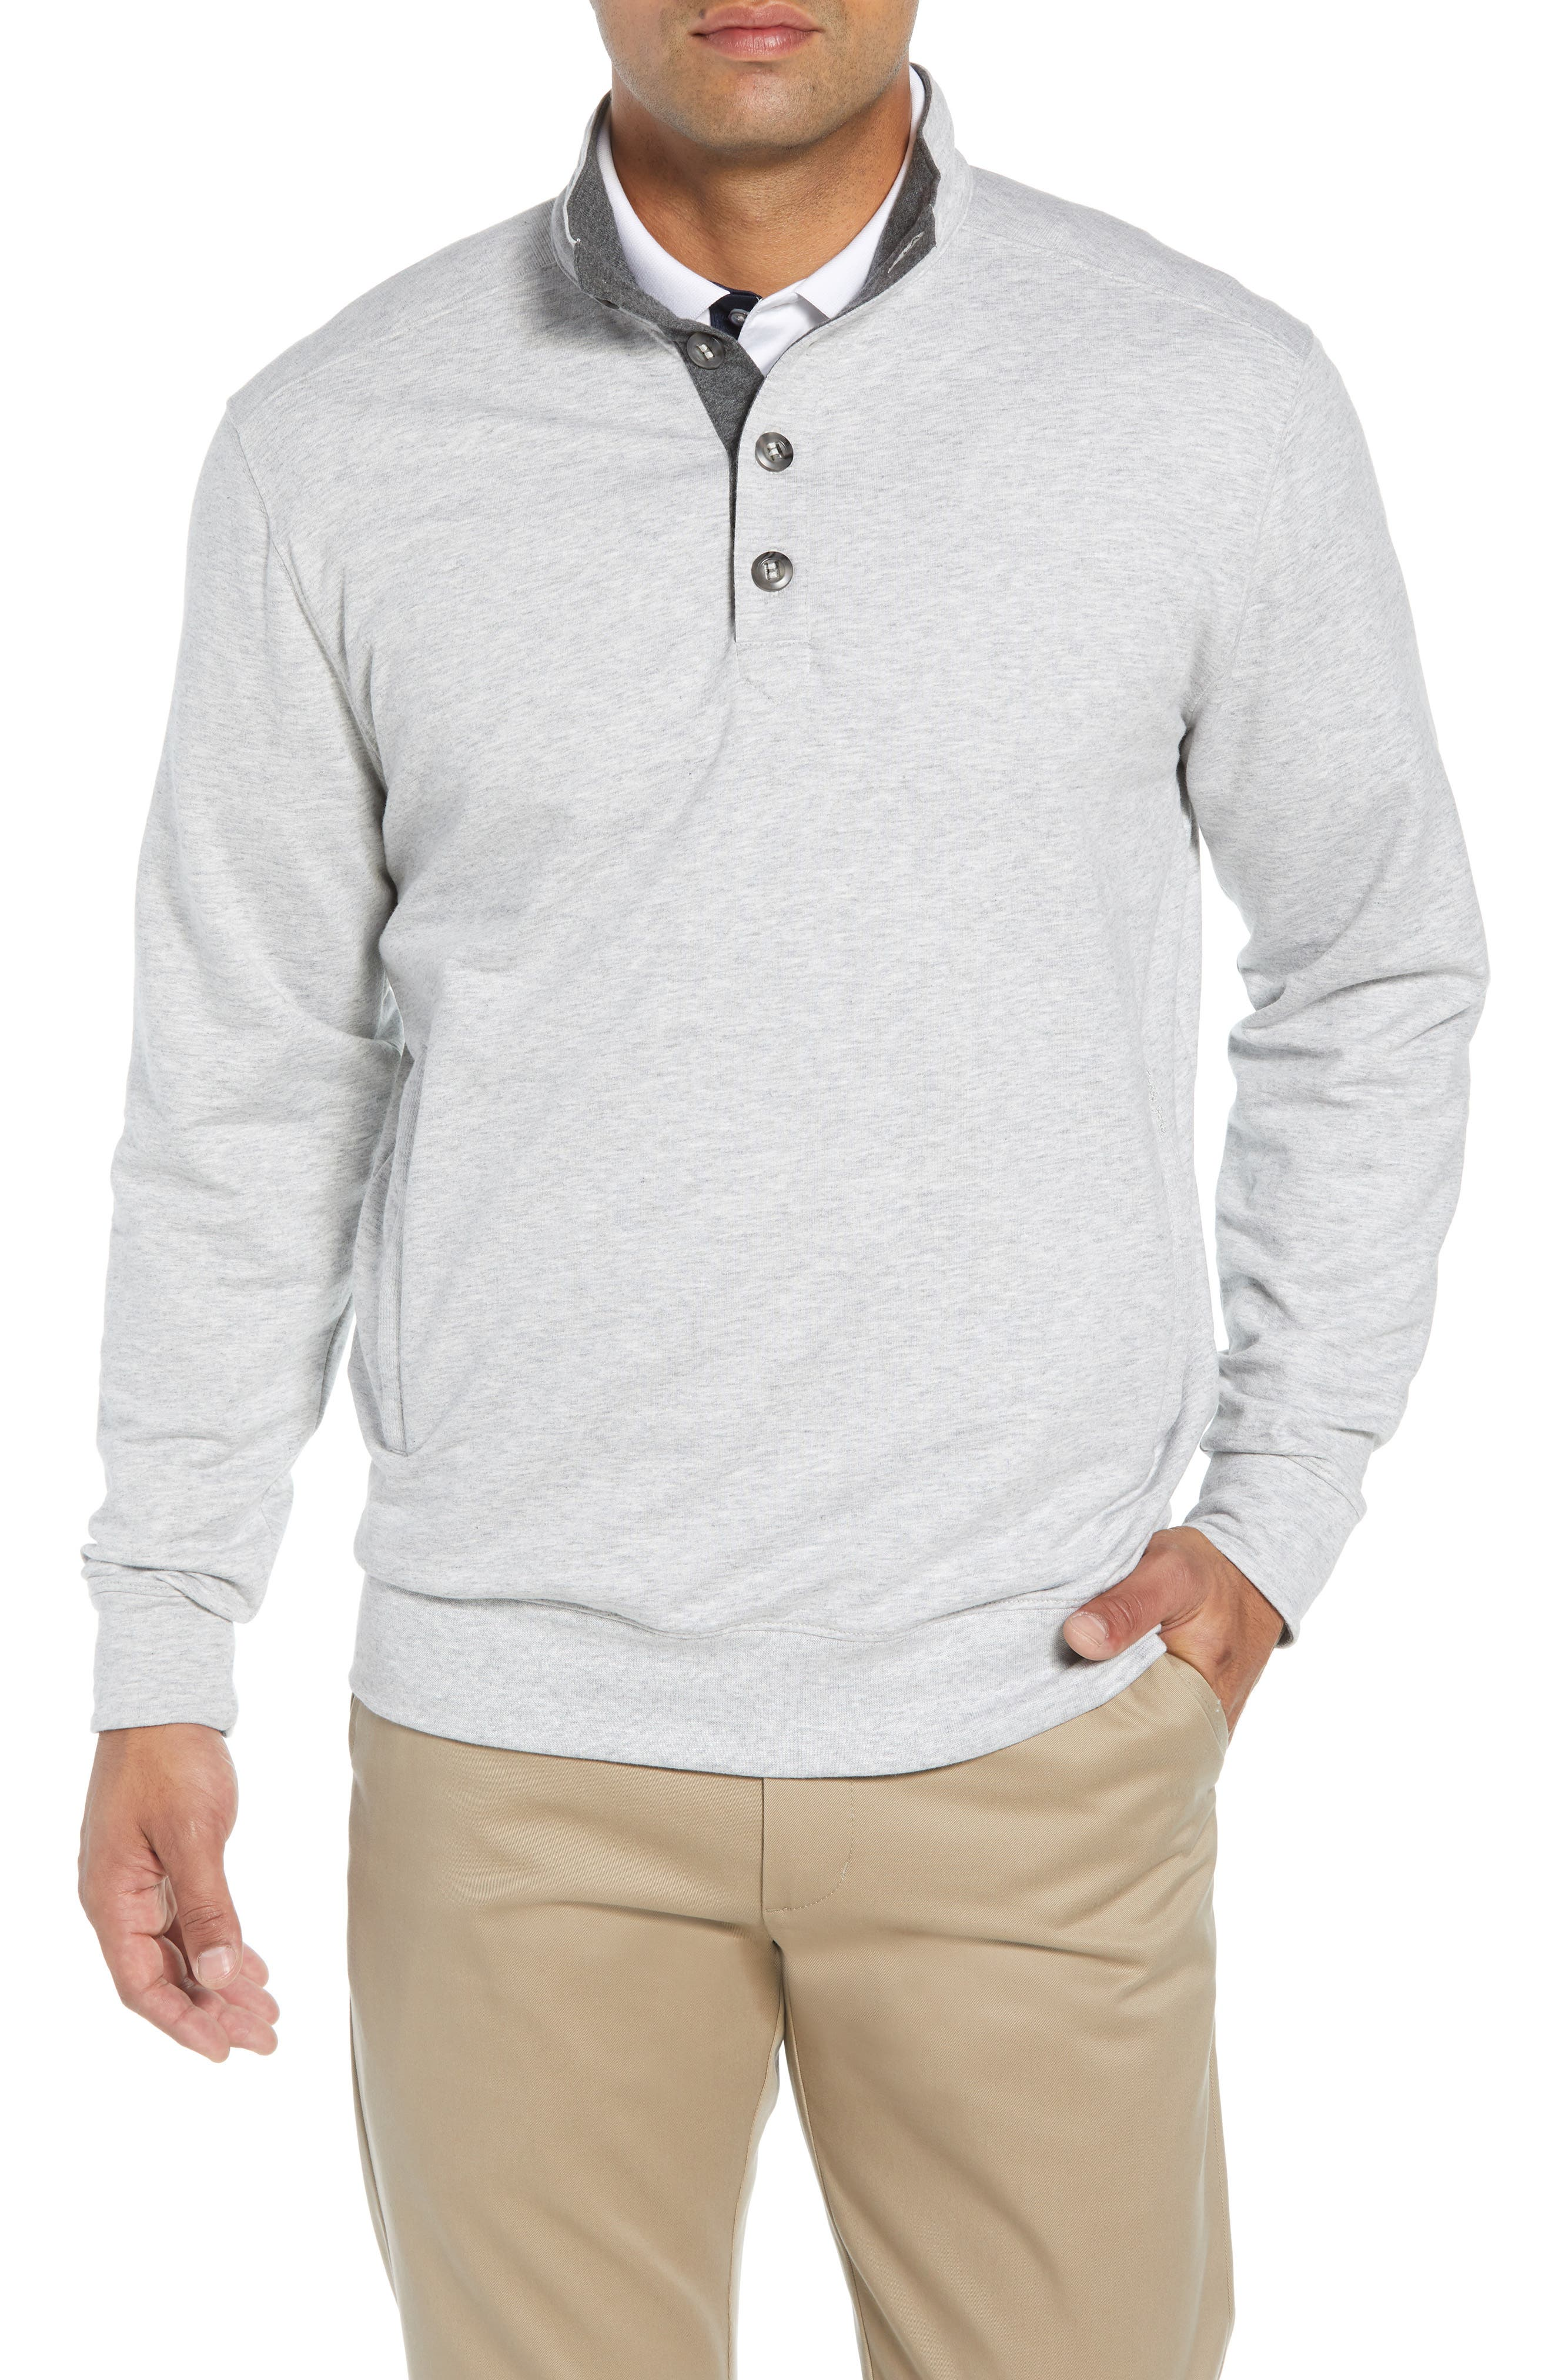 Clubhouse Pullover,                             Main thumbnail 1, color,                             GREY